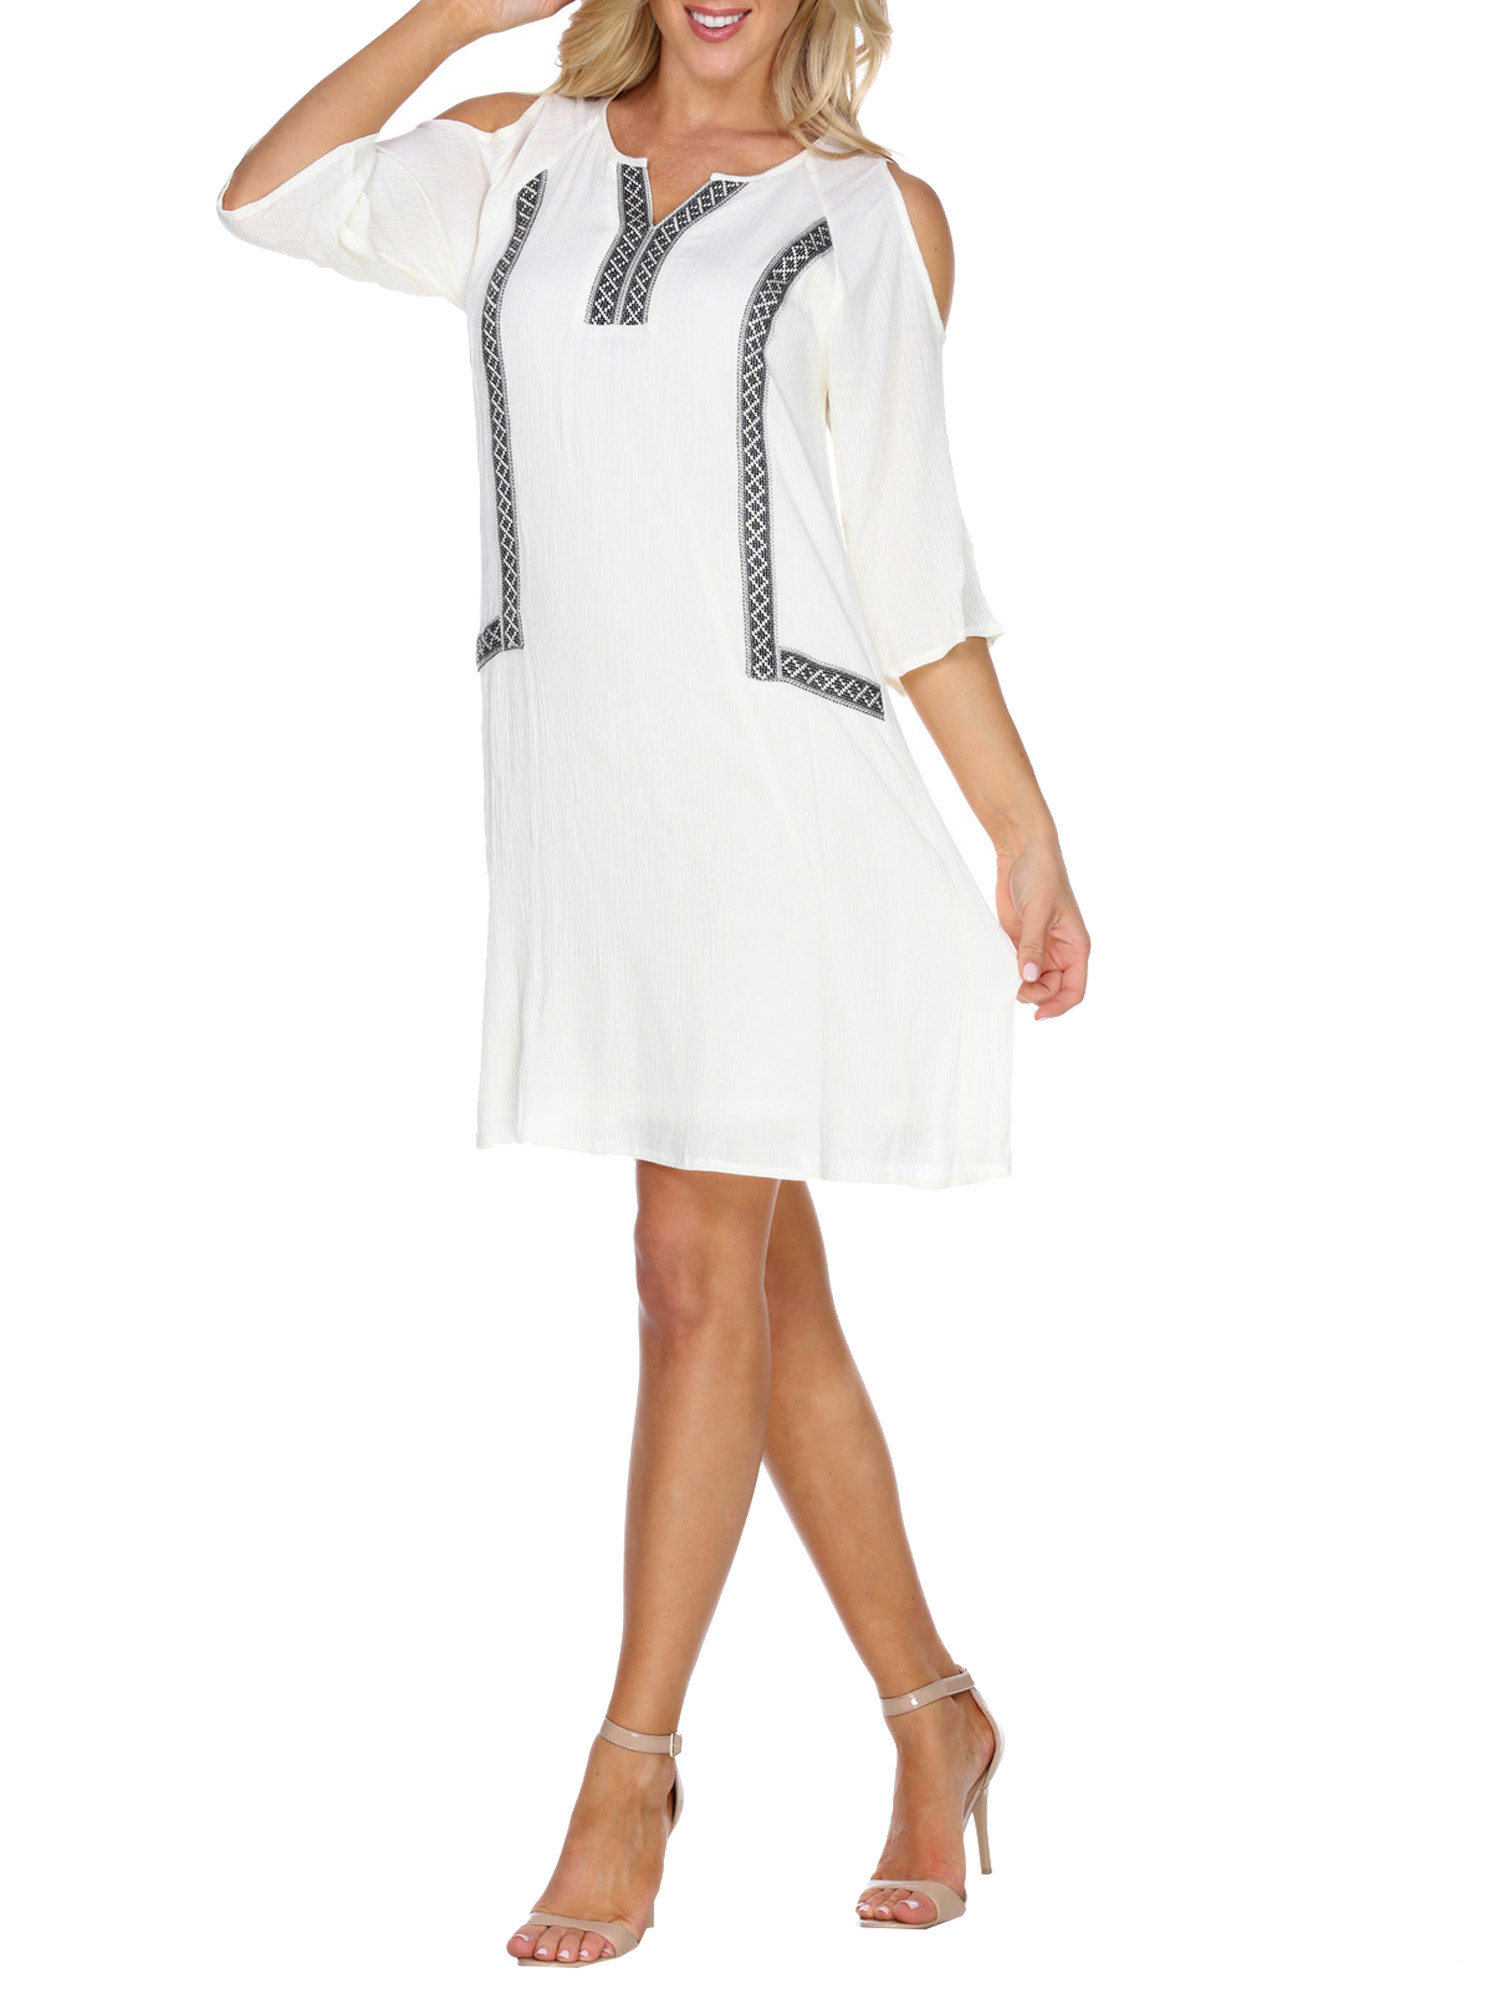 model in a white off the shoulder dress with black details